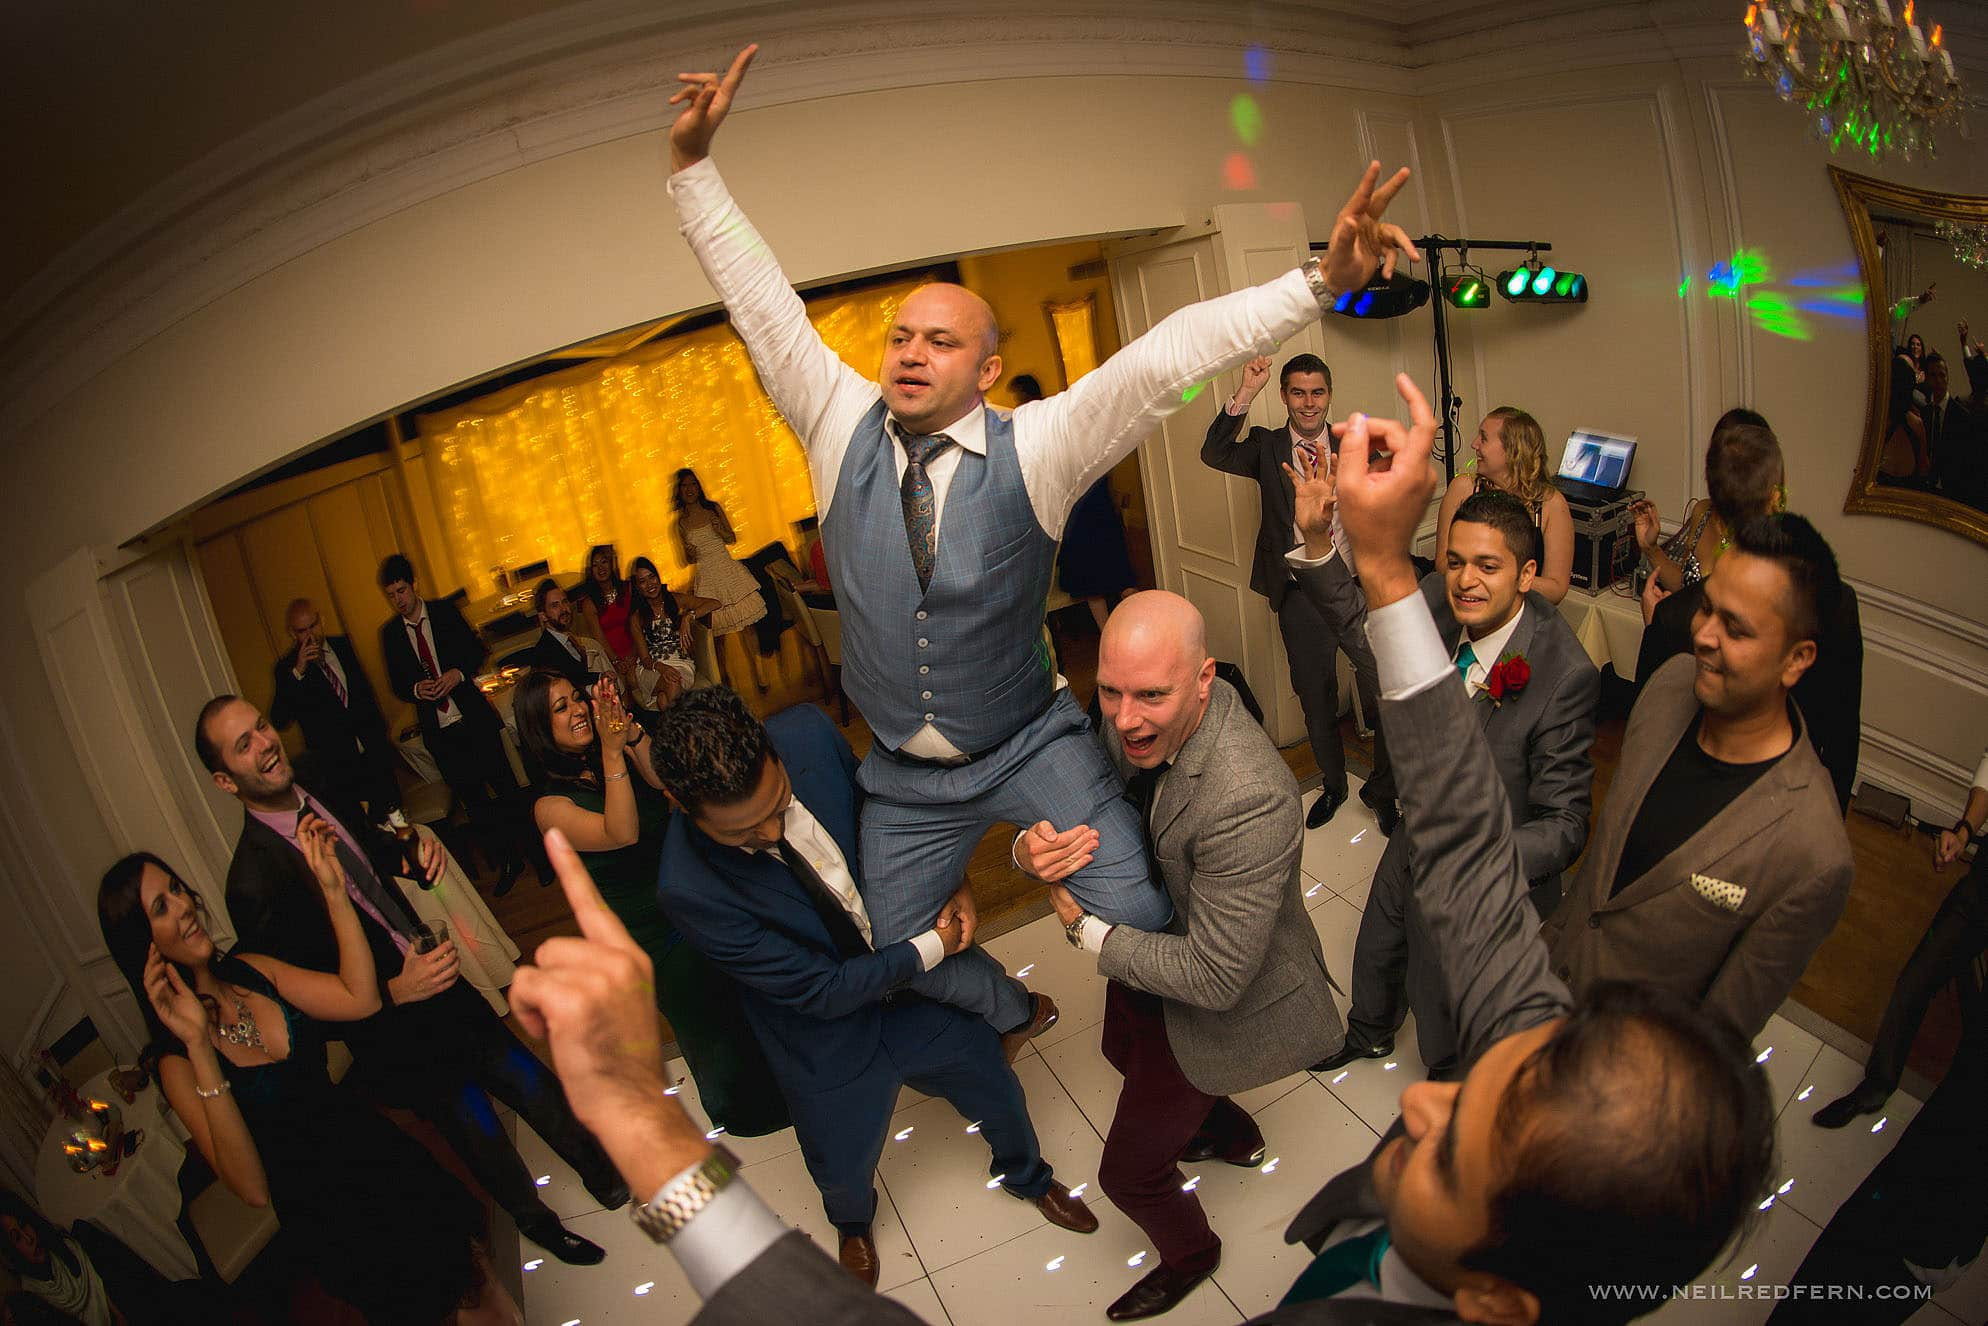 dancing photograph at wedding at West Tower in Lancashire